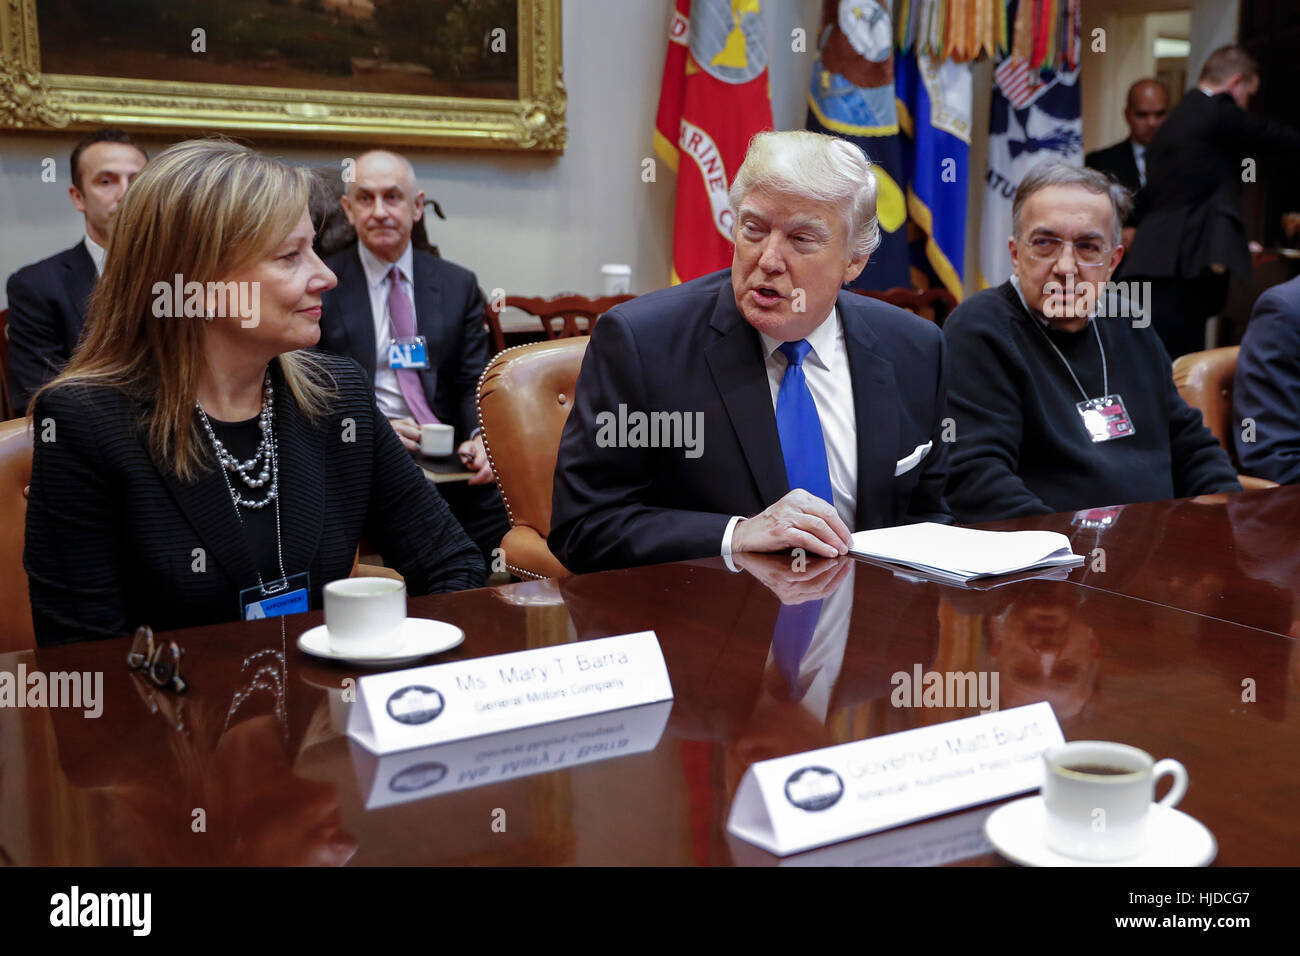 Washington, USA. 24th Jan, 2017. US President Donald Trump (C), with CEO of General Motors Mary Barra (L) and CEO Stock Photo